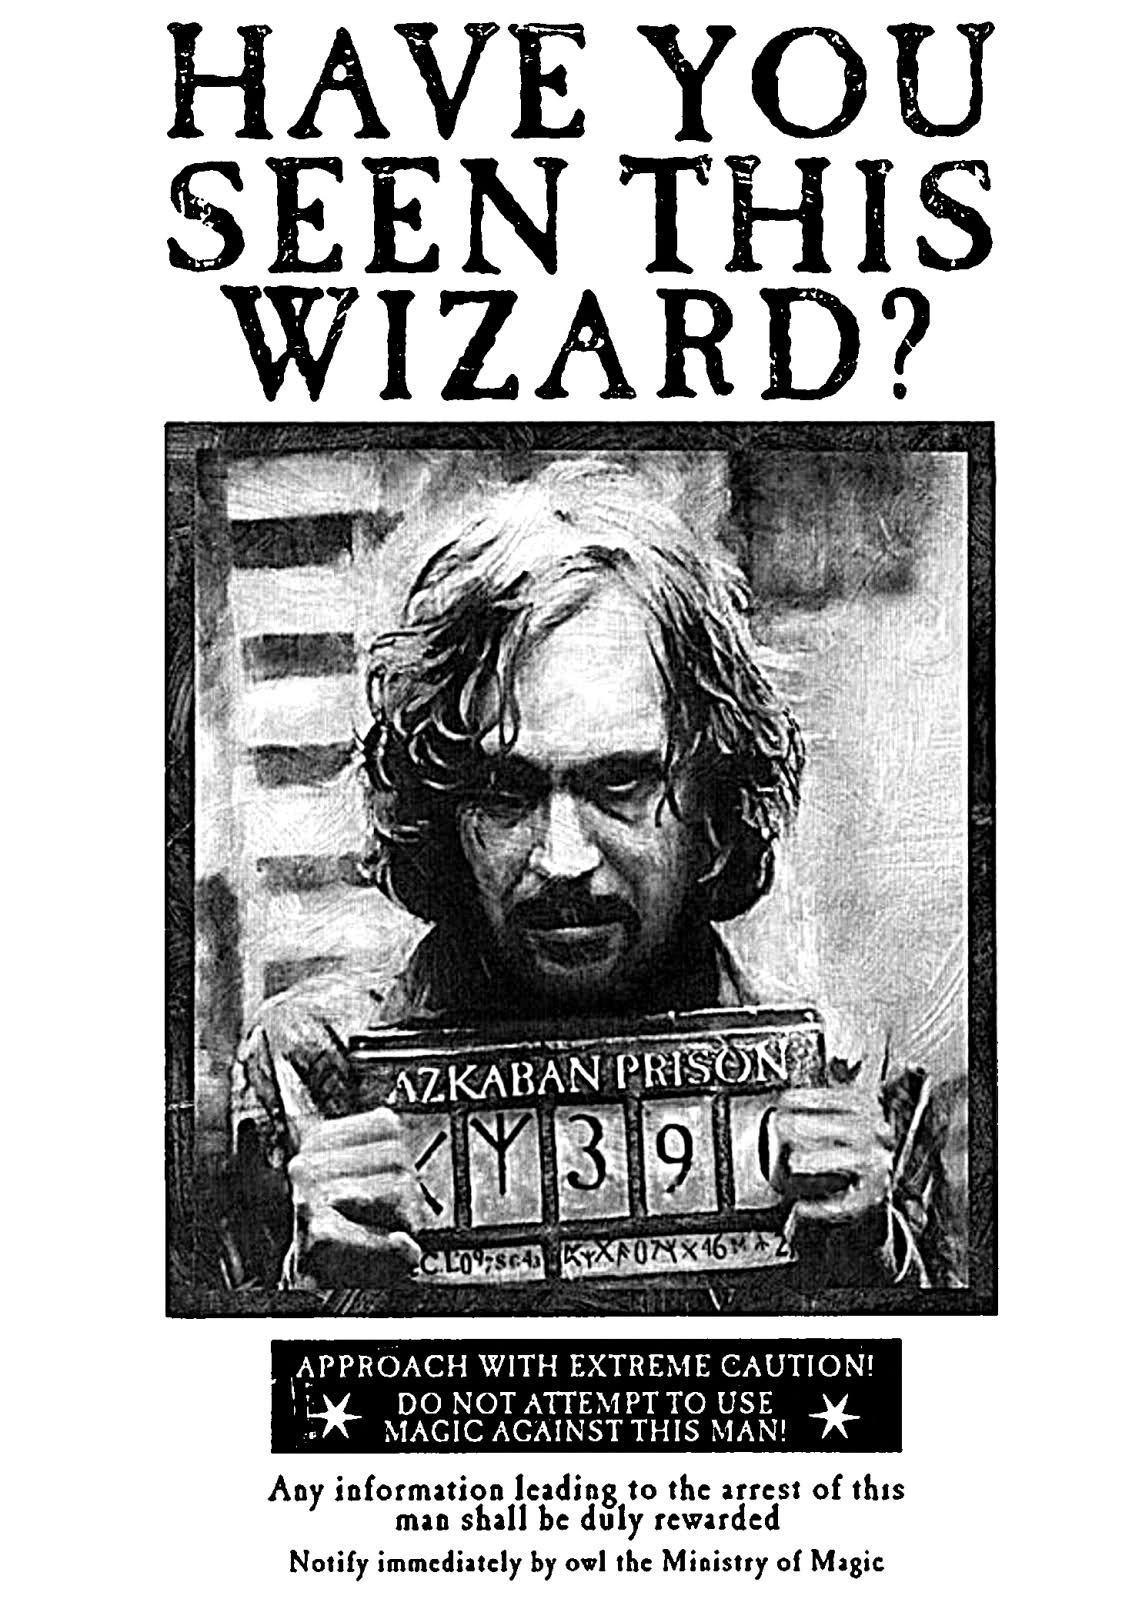 Looking For Harry Potter Sirius Black Wanted Poster | Rpf Costume - Free Printable Harry Potter Posters